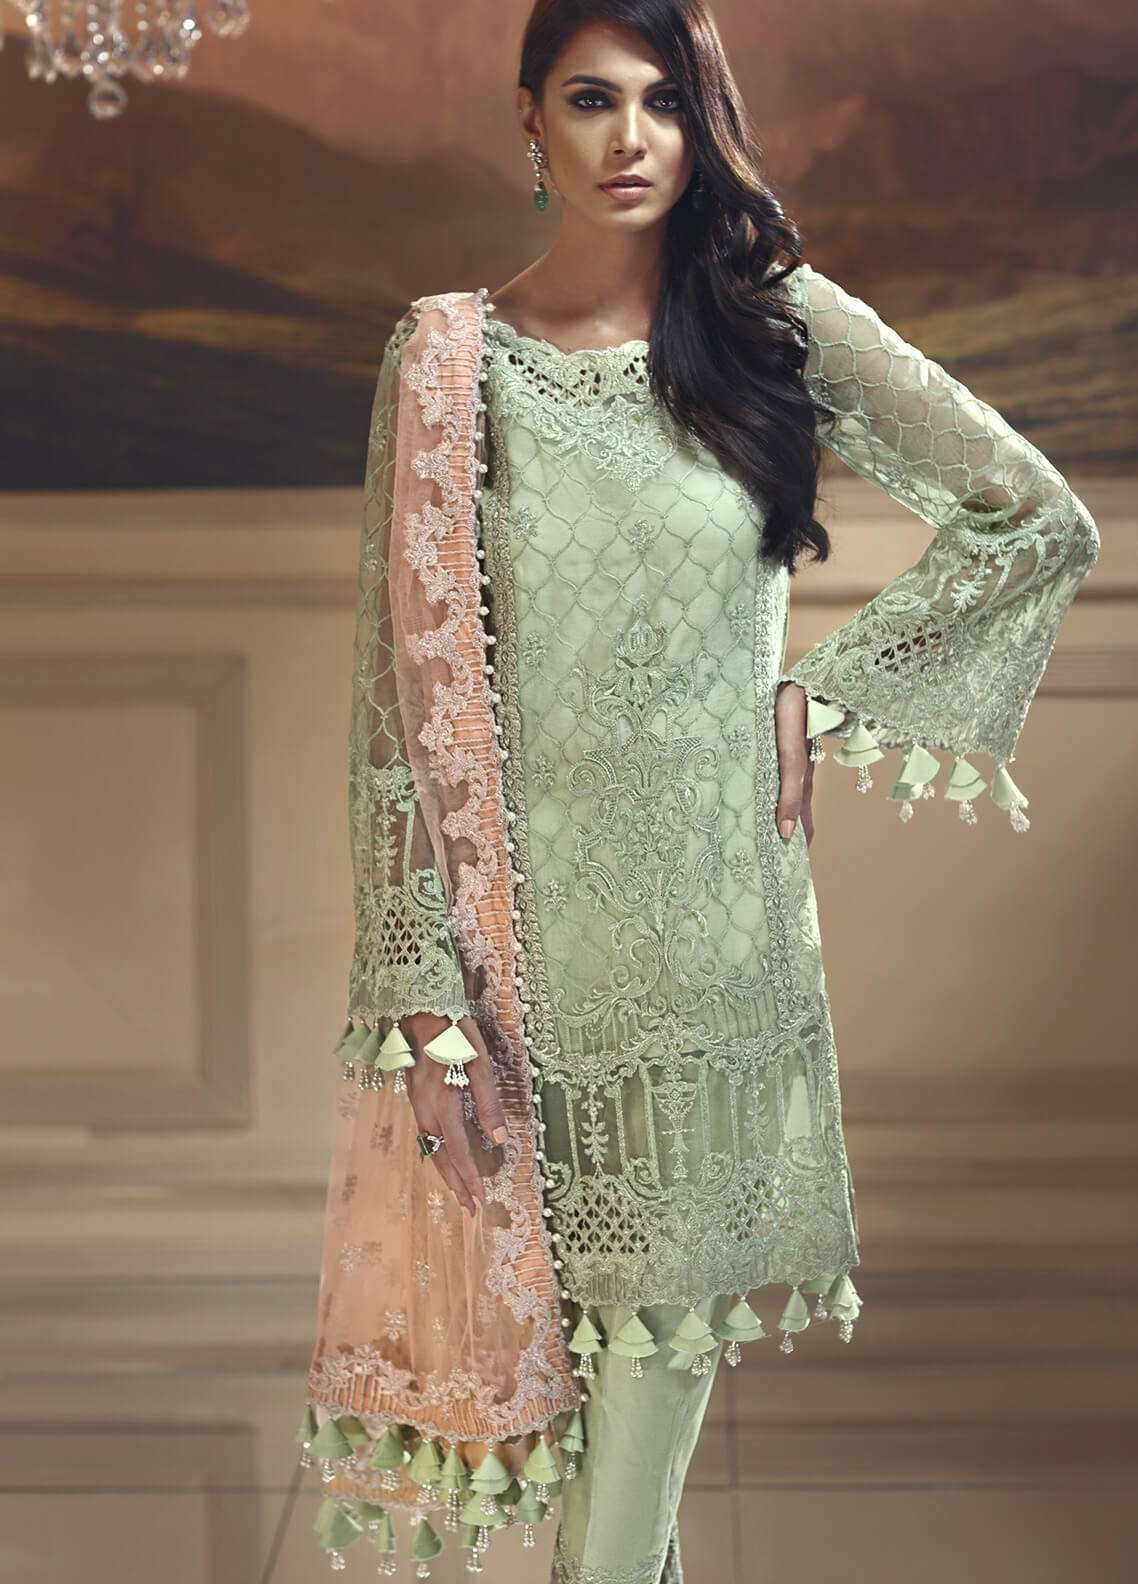 Anaya by Kiran Chaudhry Embroidered Organza Unstitched 3 Piece Suit AKC18W 05 - Wedding Edition